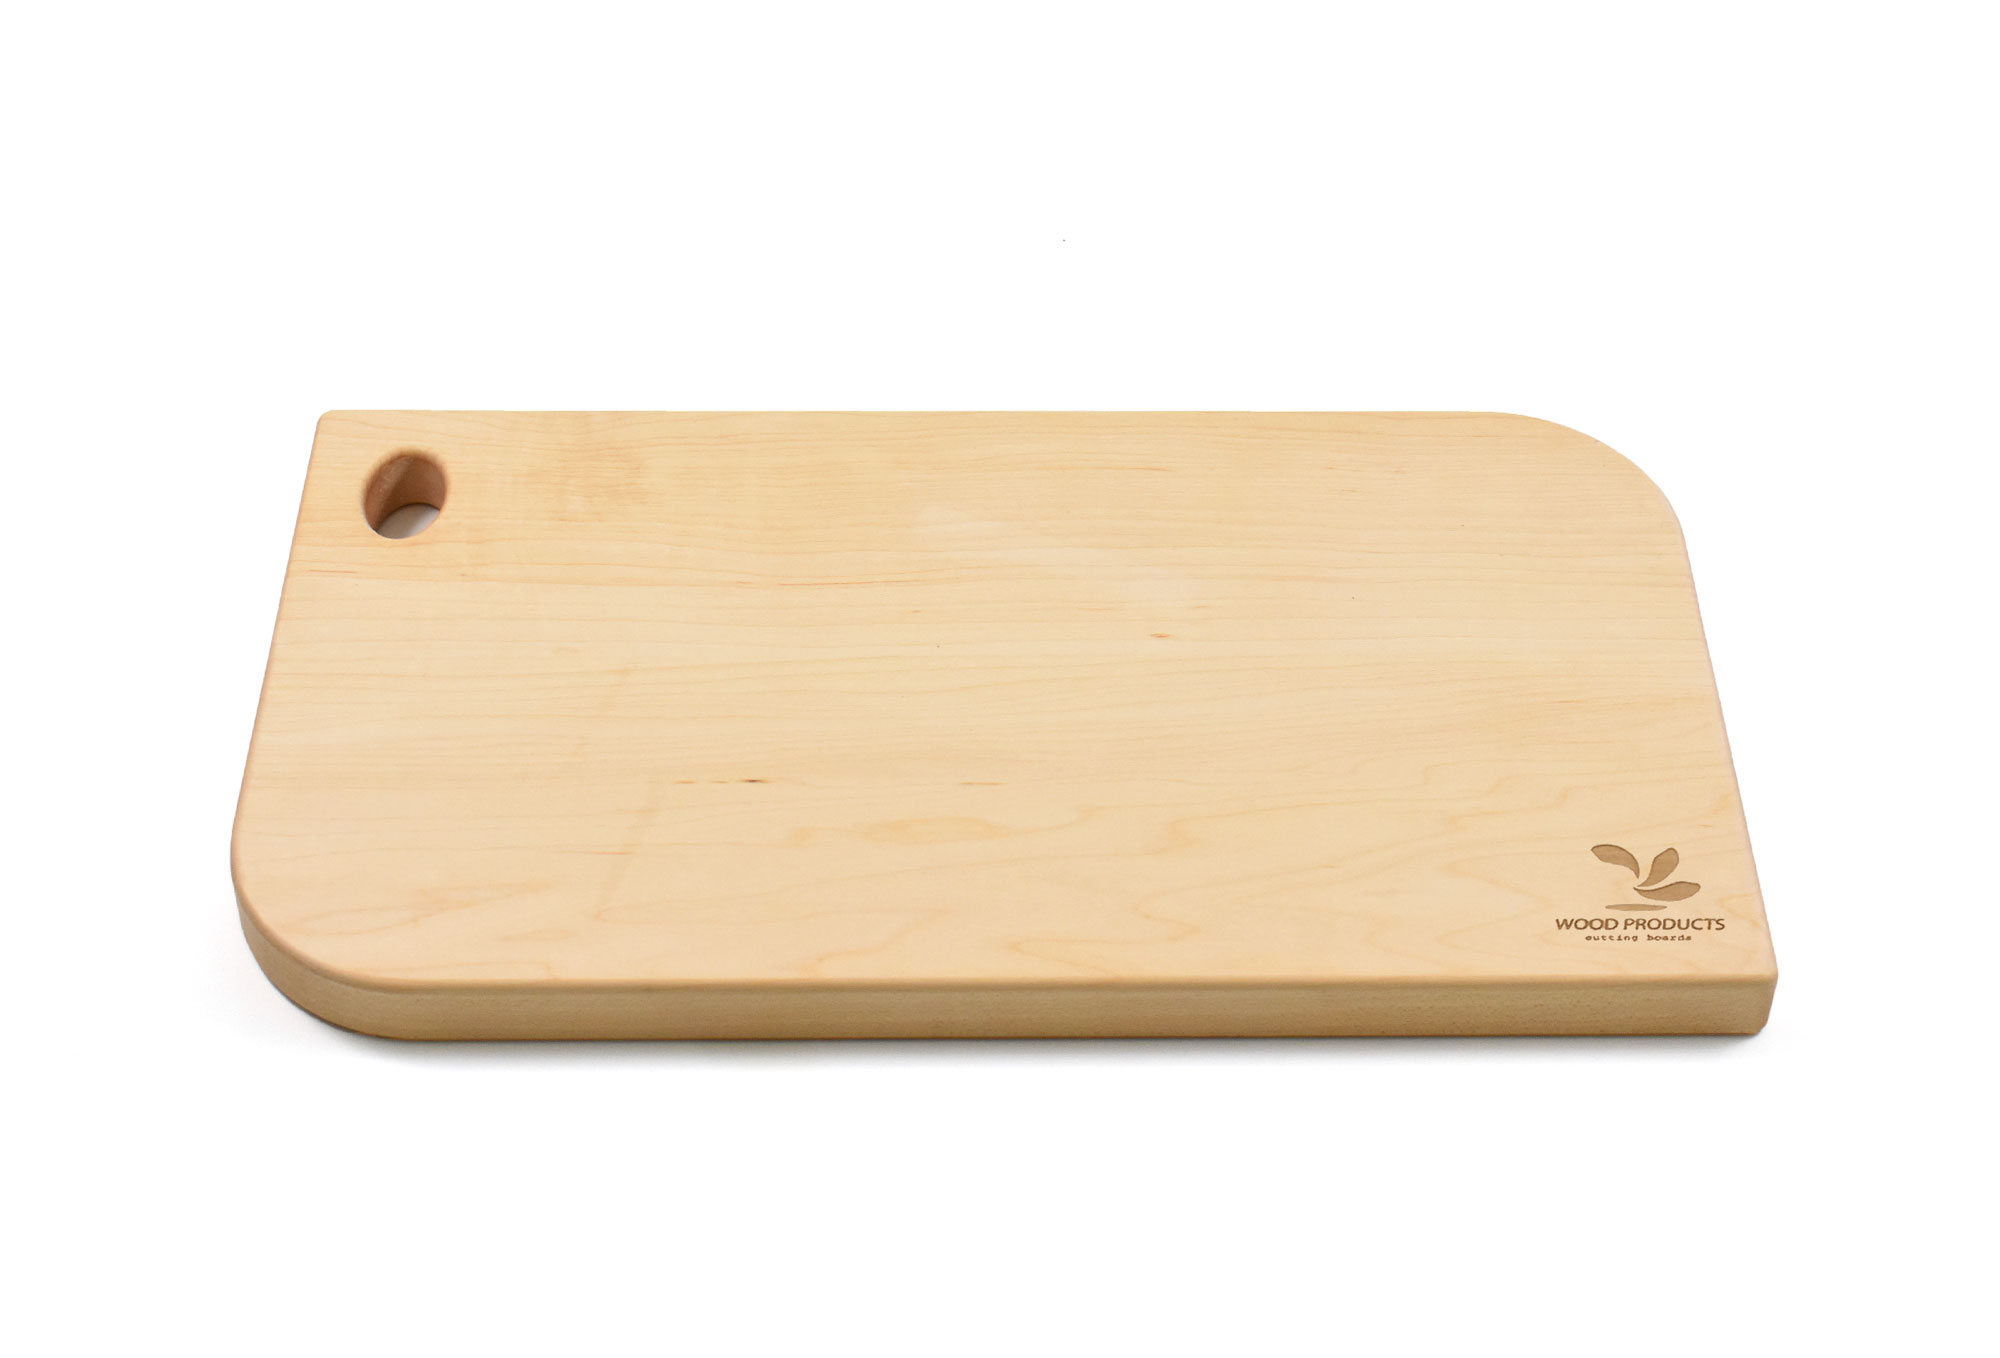 Rectangular charcuterie board with Engraving